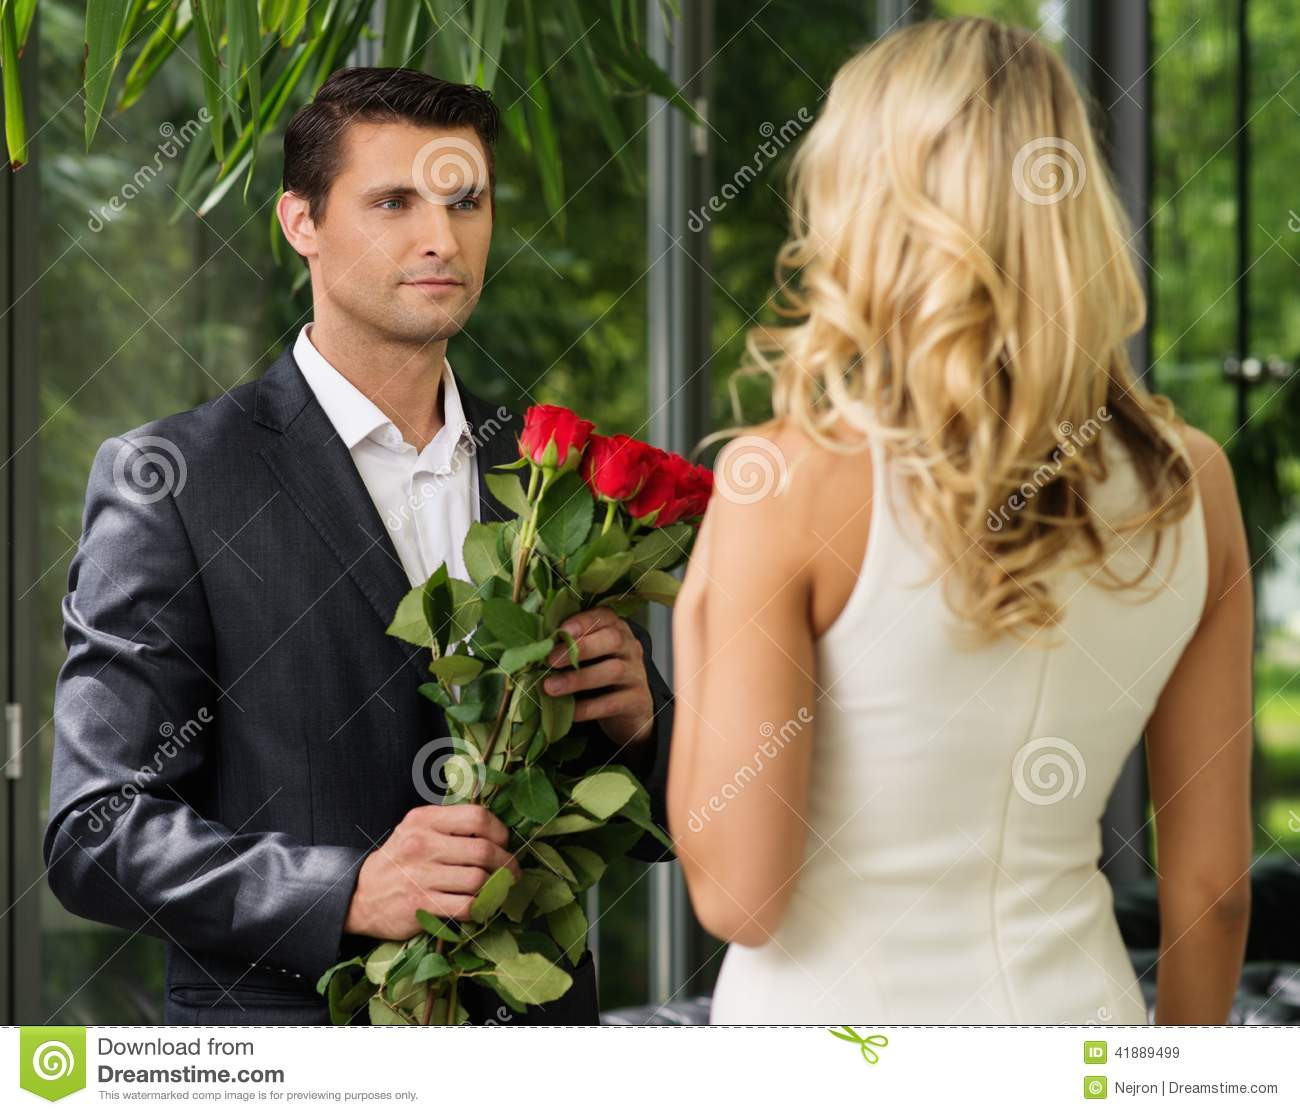 dating a very handsome man Have you ever noticed that very attractive women are not interested in nice man but are attracted to bad boys do you have attractive women friends that just want to be friends with you.